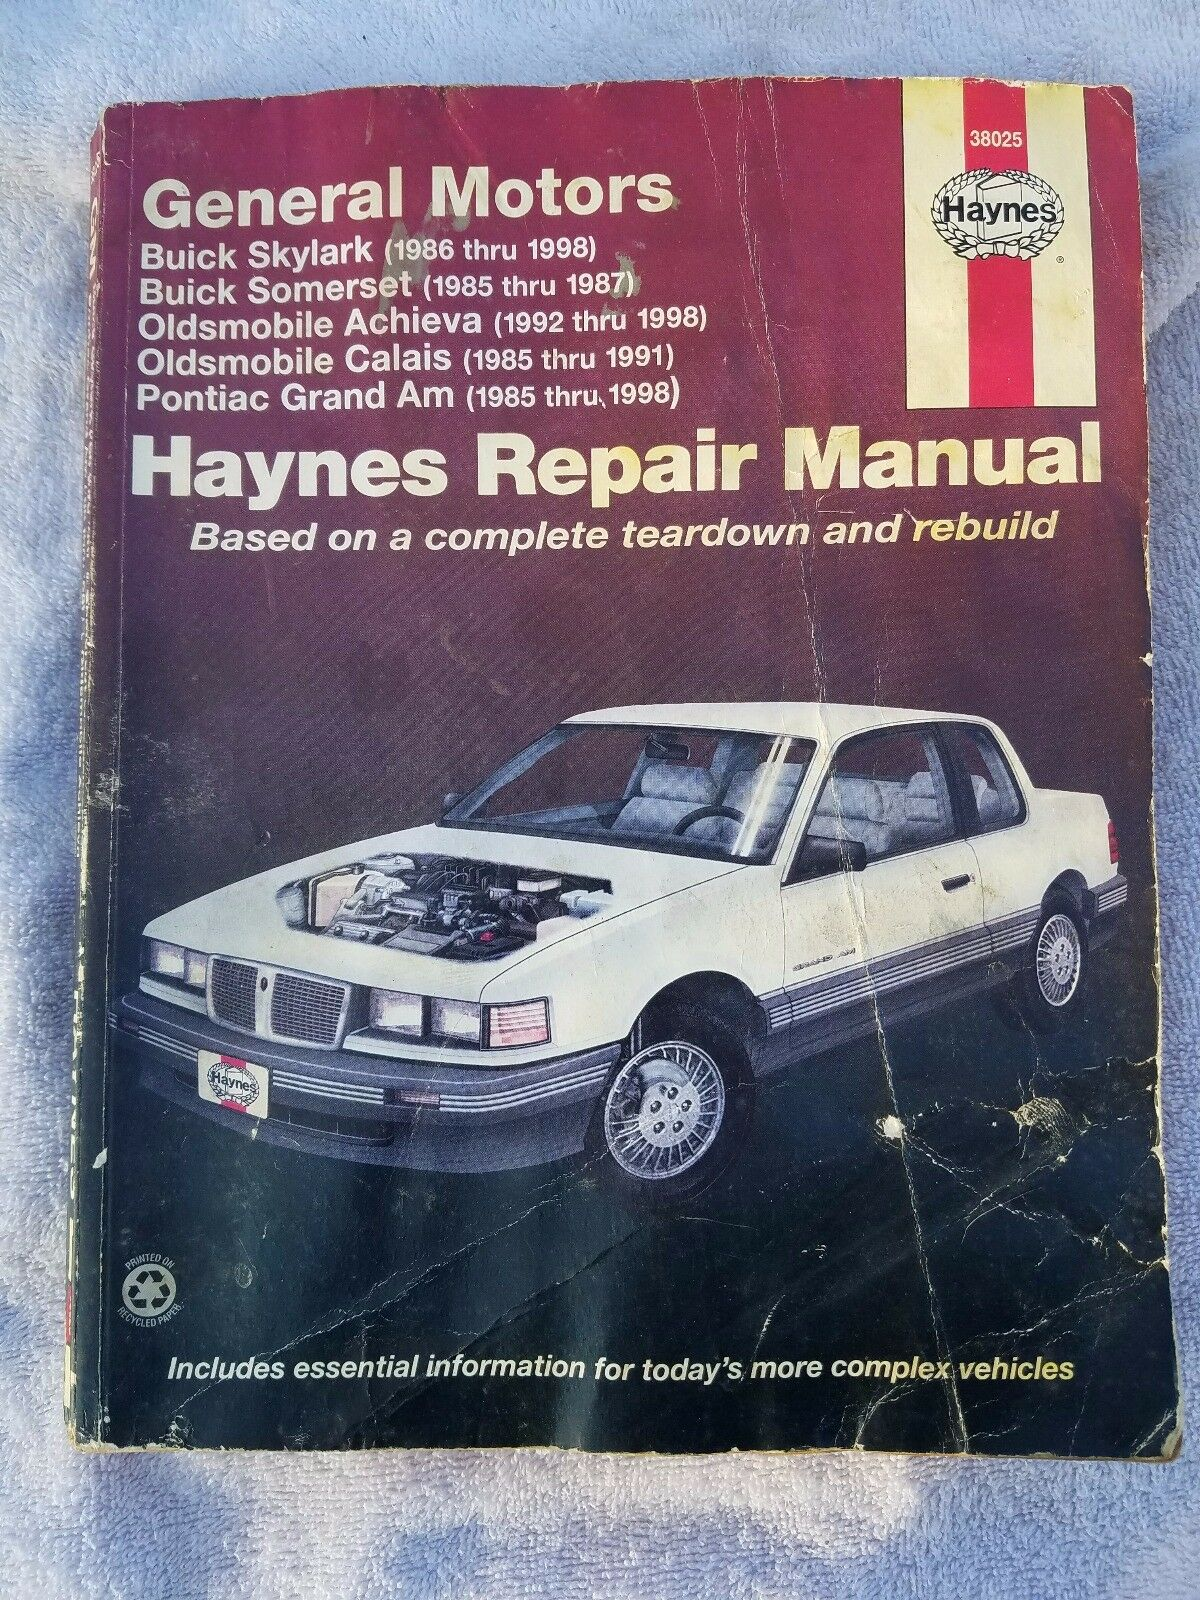 Haynes General Motors Repair Manual 38025 Skylark Calais Achieva Grand Am |  eBay